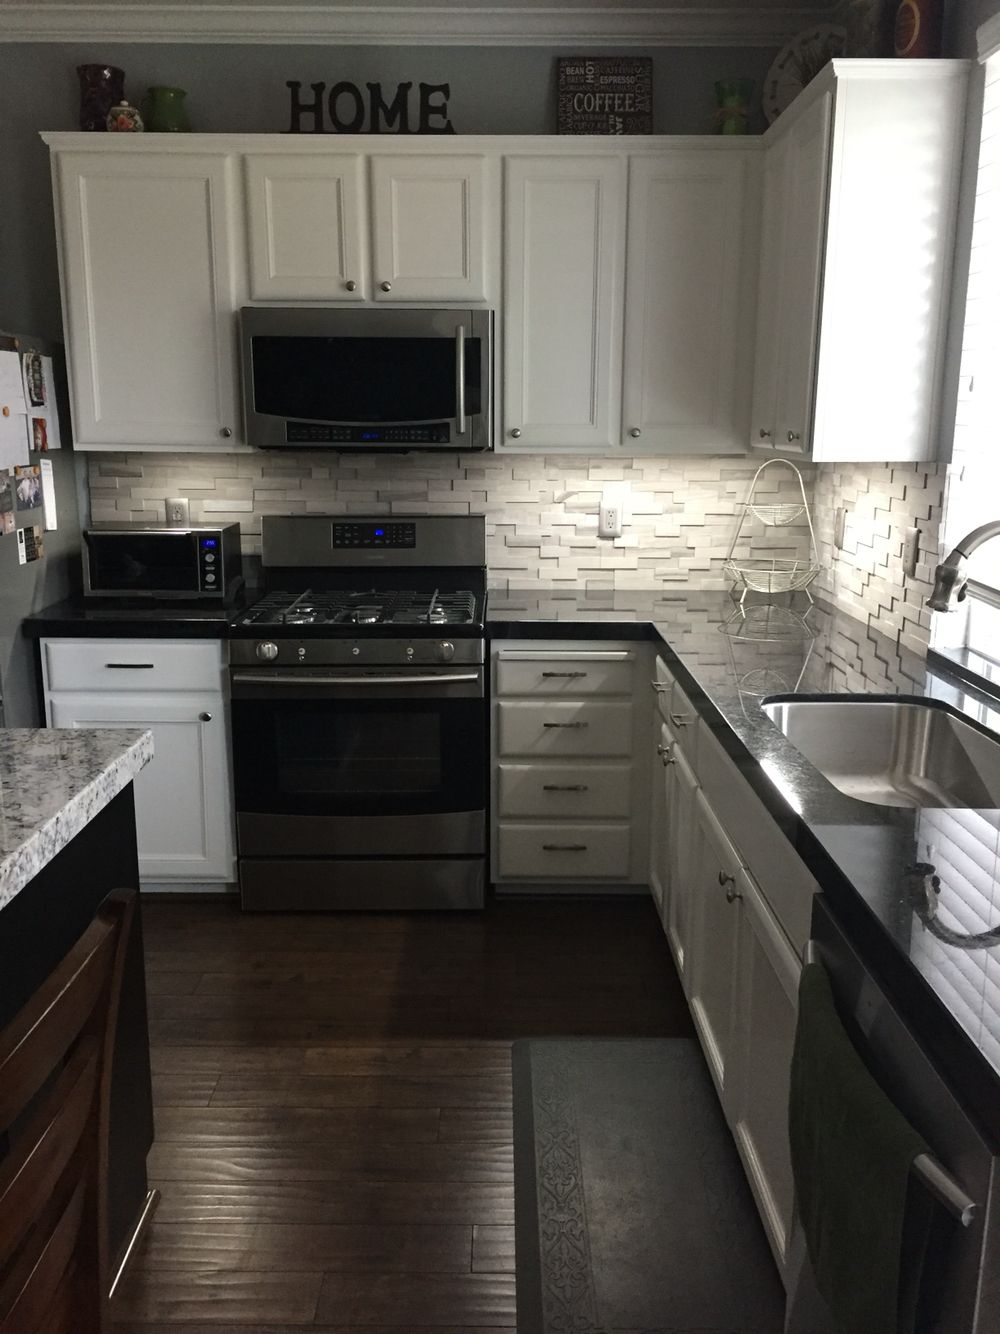 Kitchen Gray Granite Countertops : Black granite with a gray stone backsplash for the home